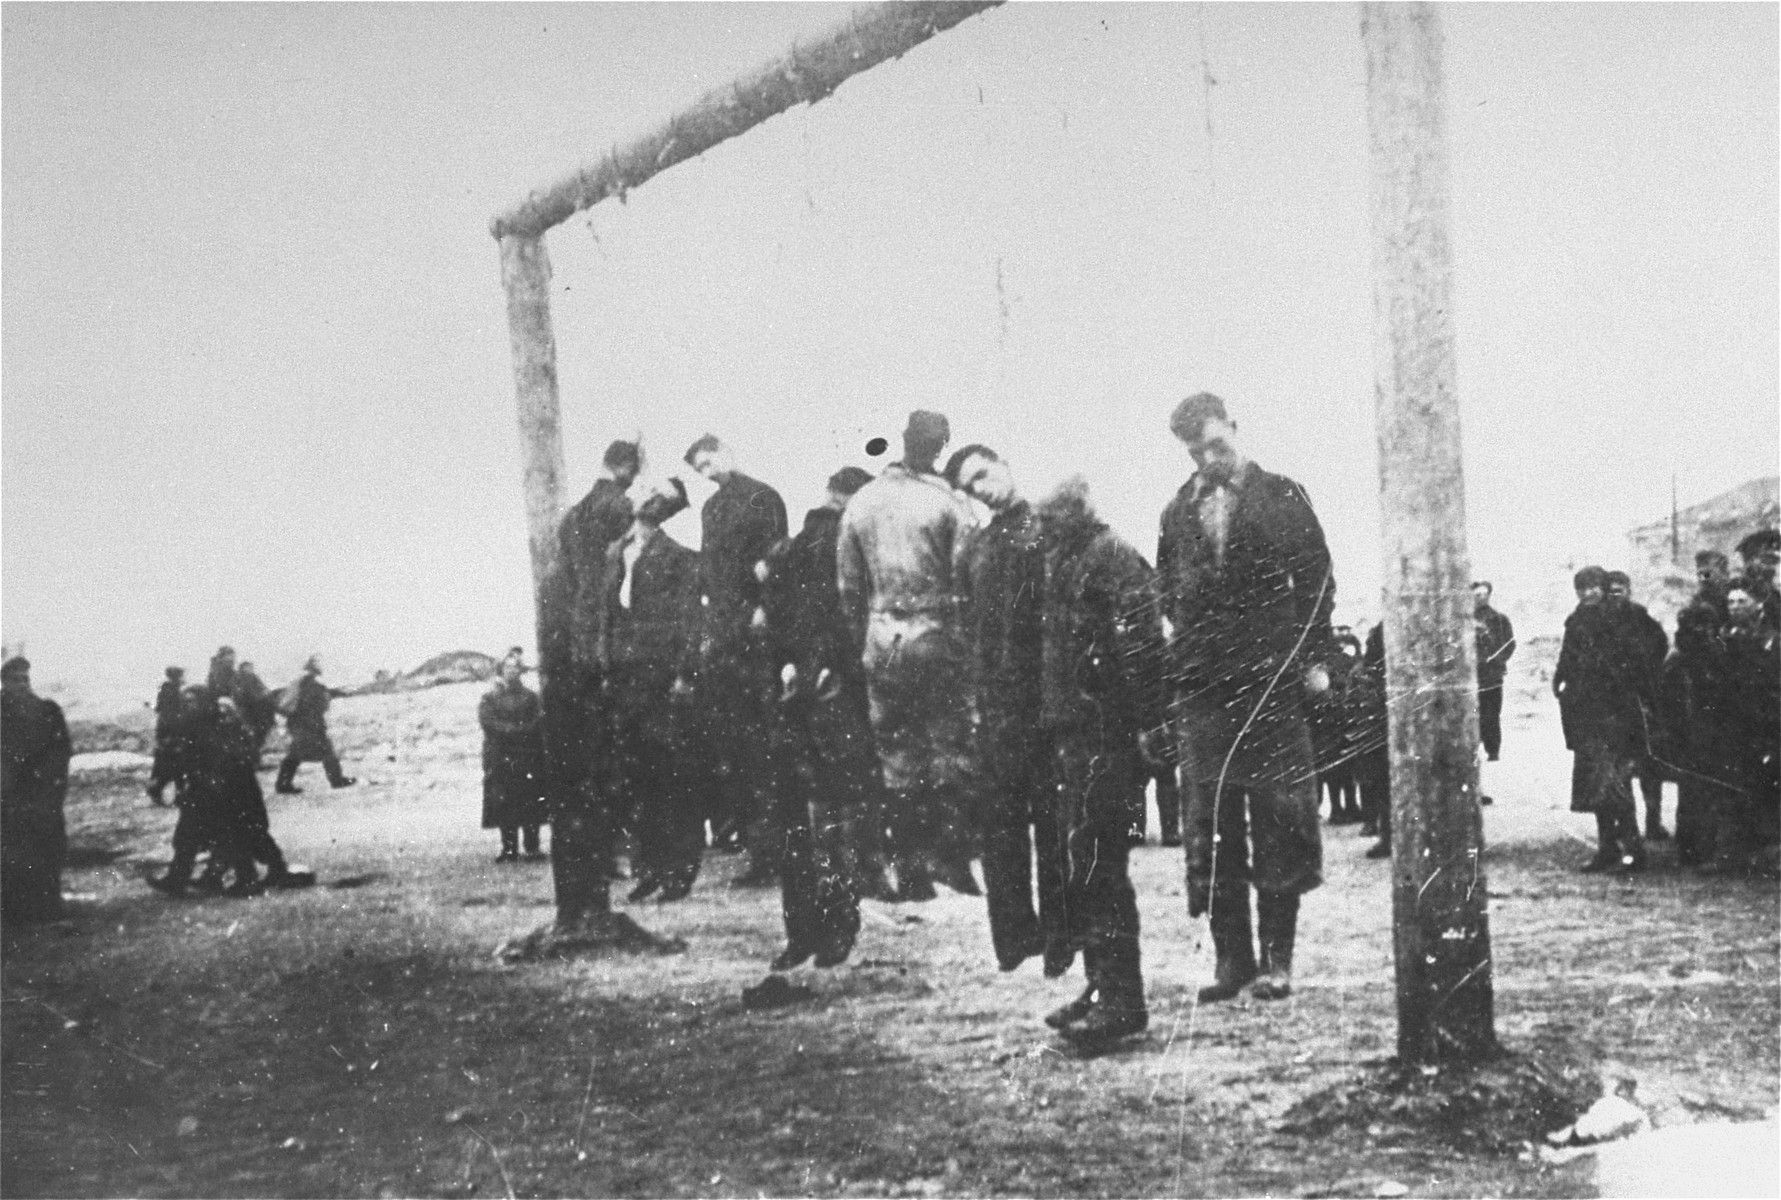 Execution by hanging of members of the Lvov Ghetto Judenrat.